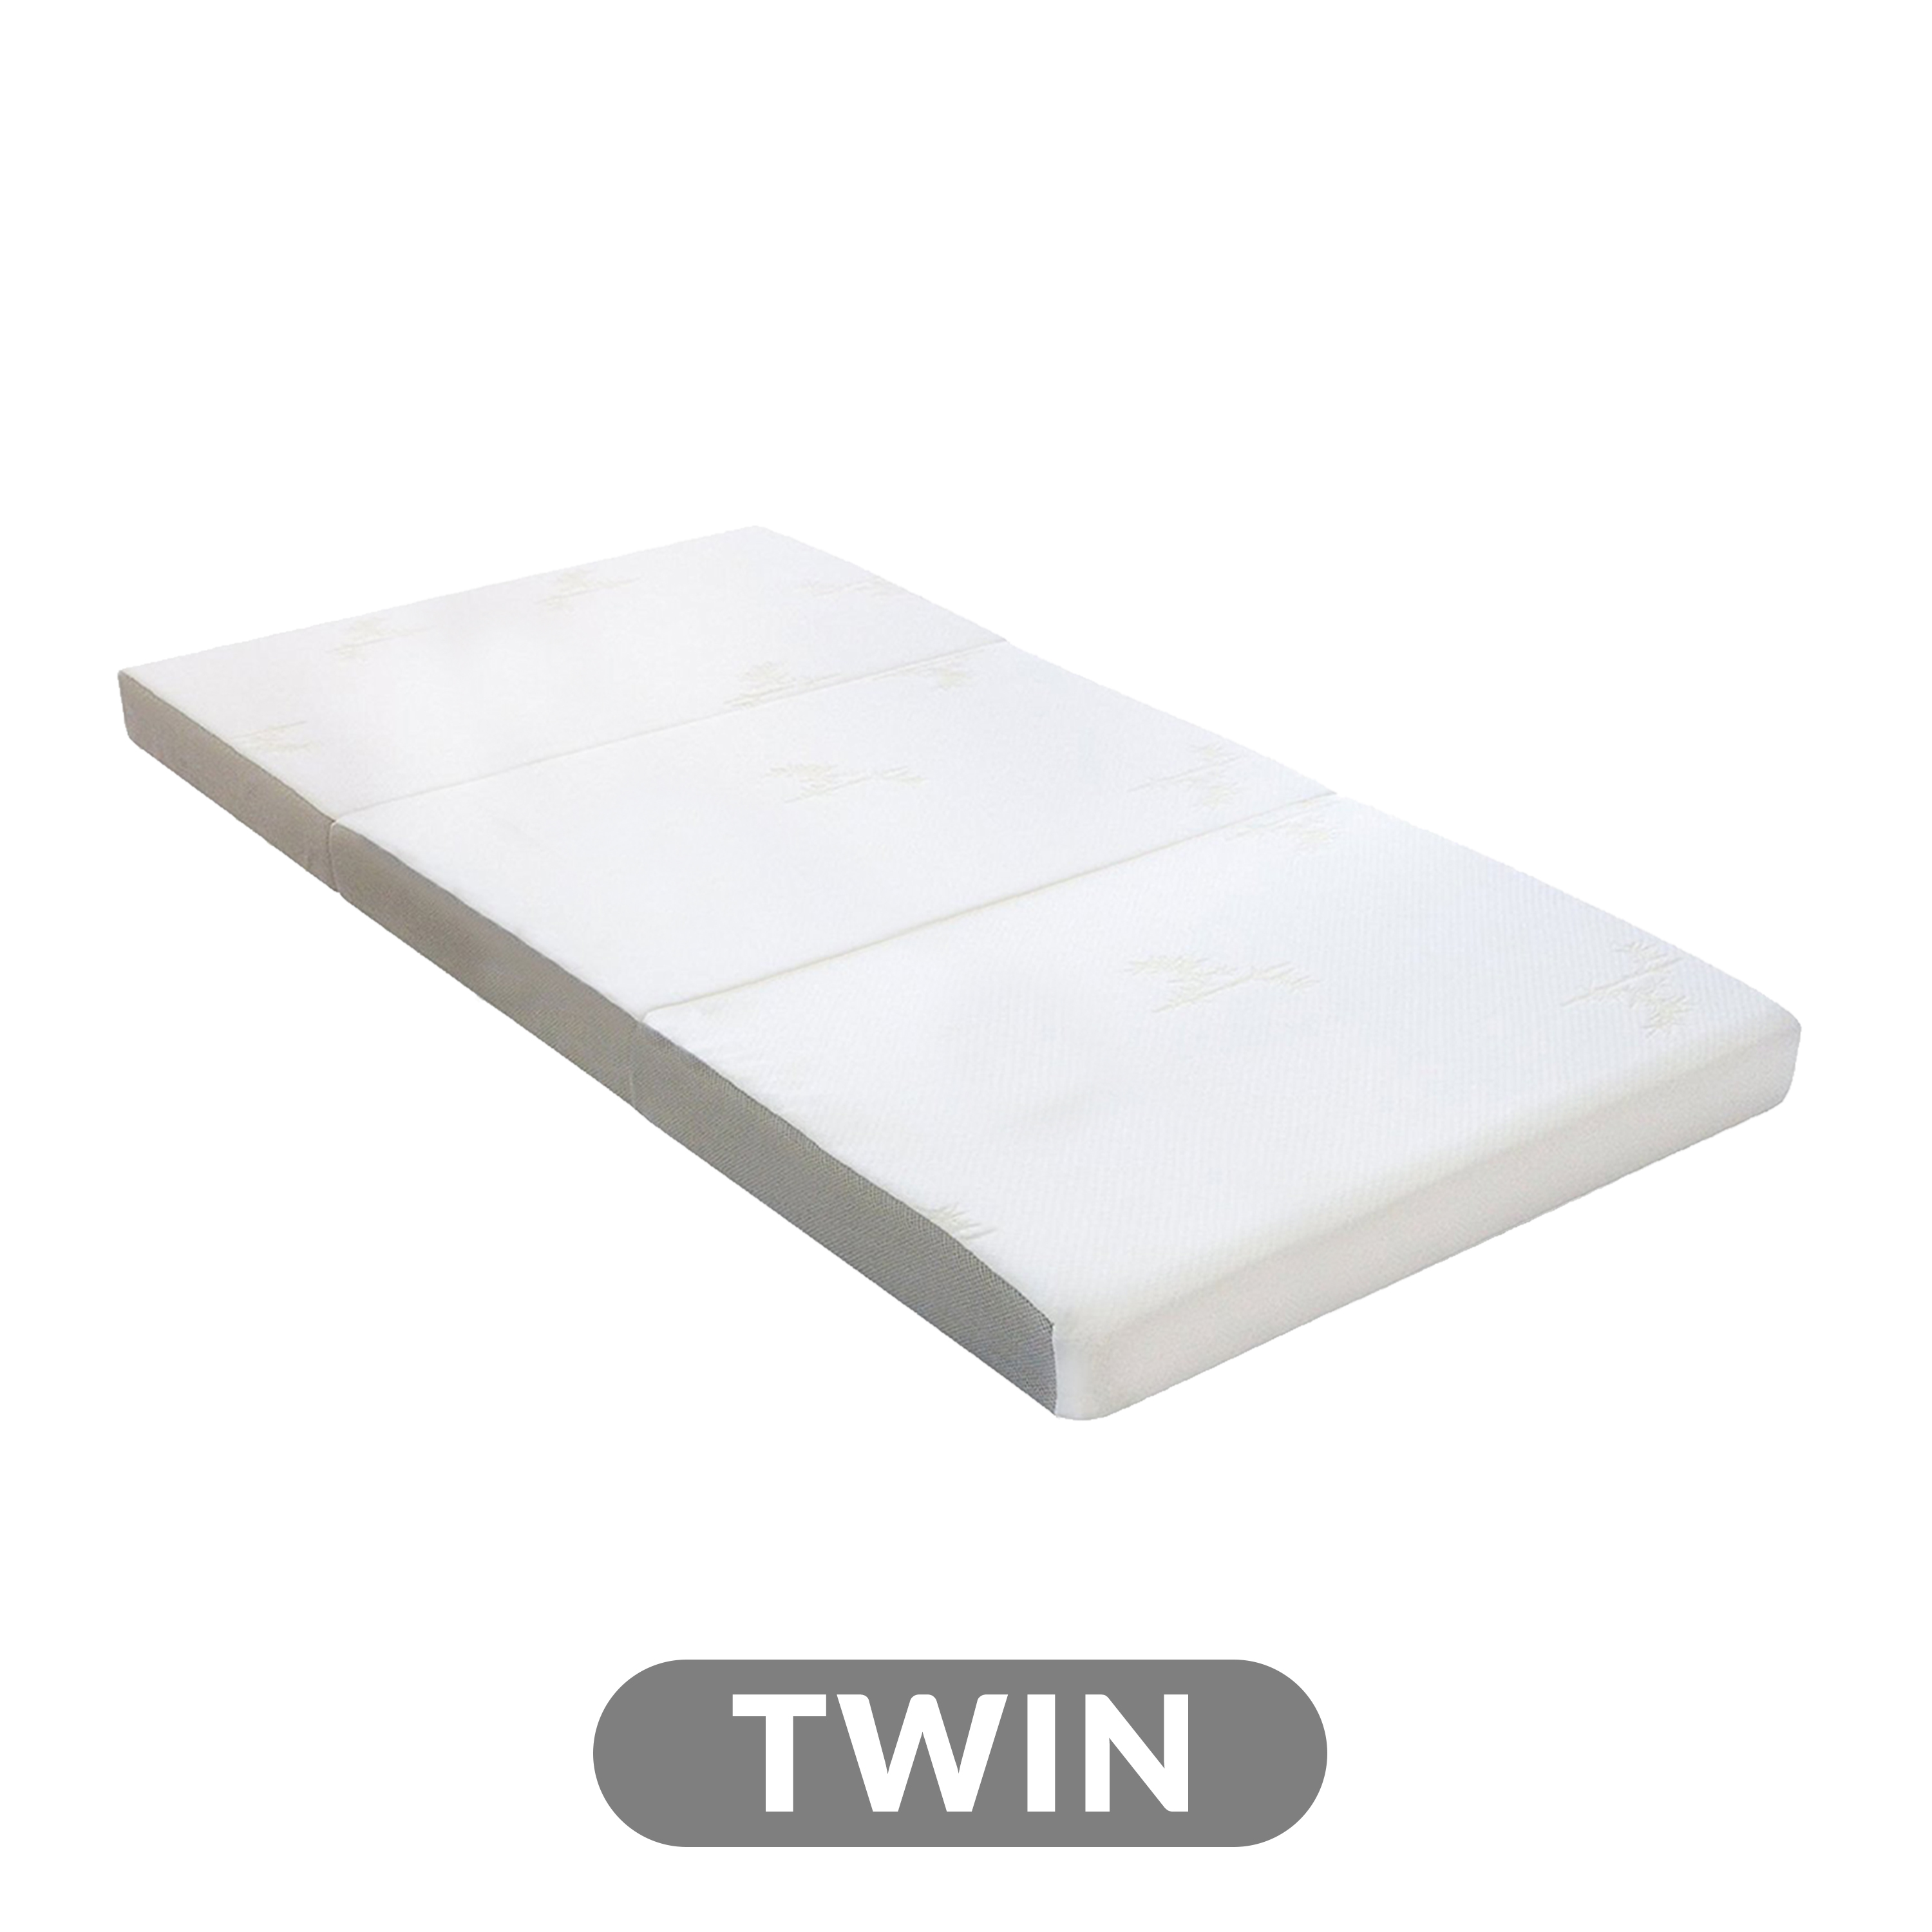 Picture of: 4 Tri Fold Foam Mattress With Cover Twin Milliard Bedding The Ultimate Sleep Experience